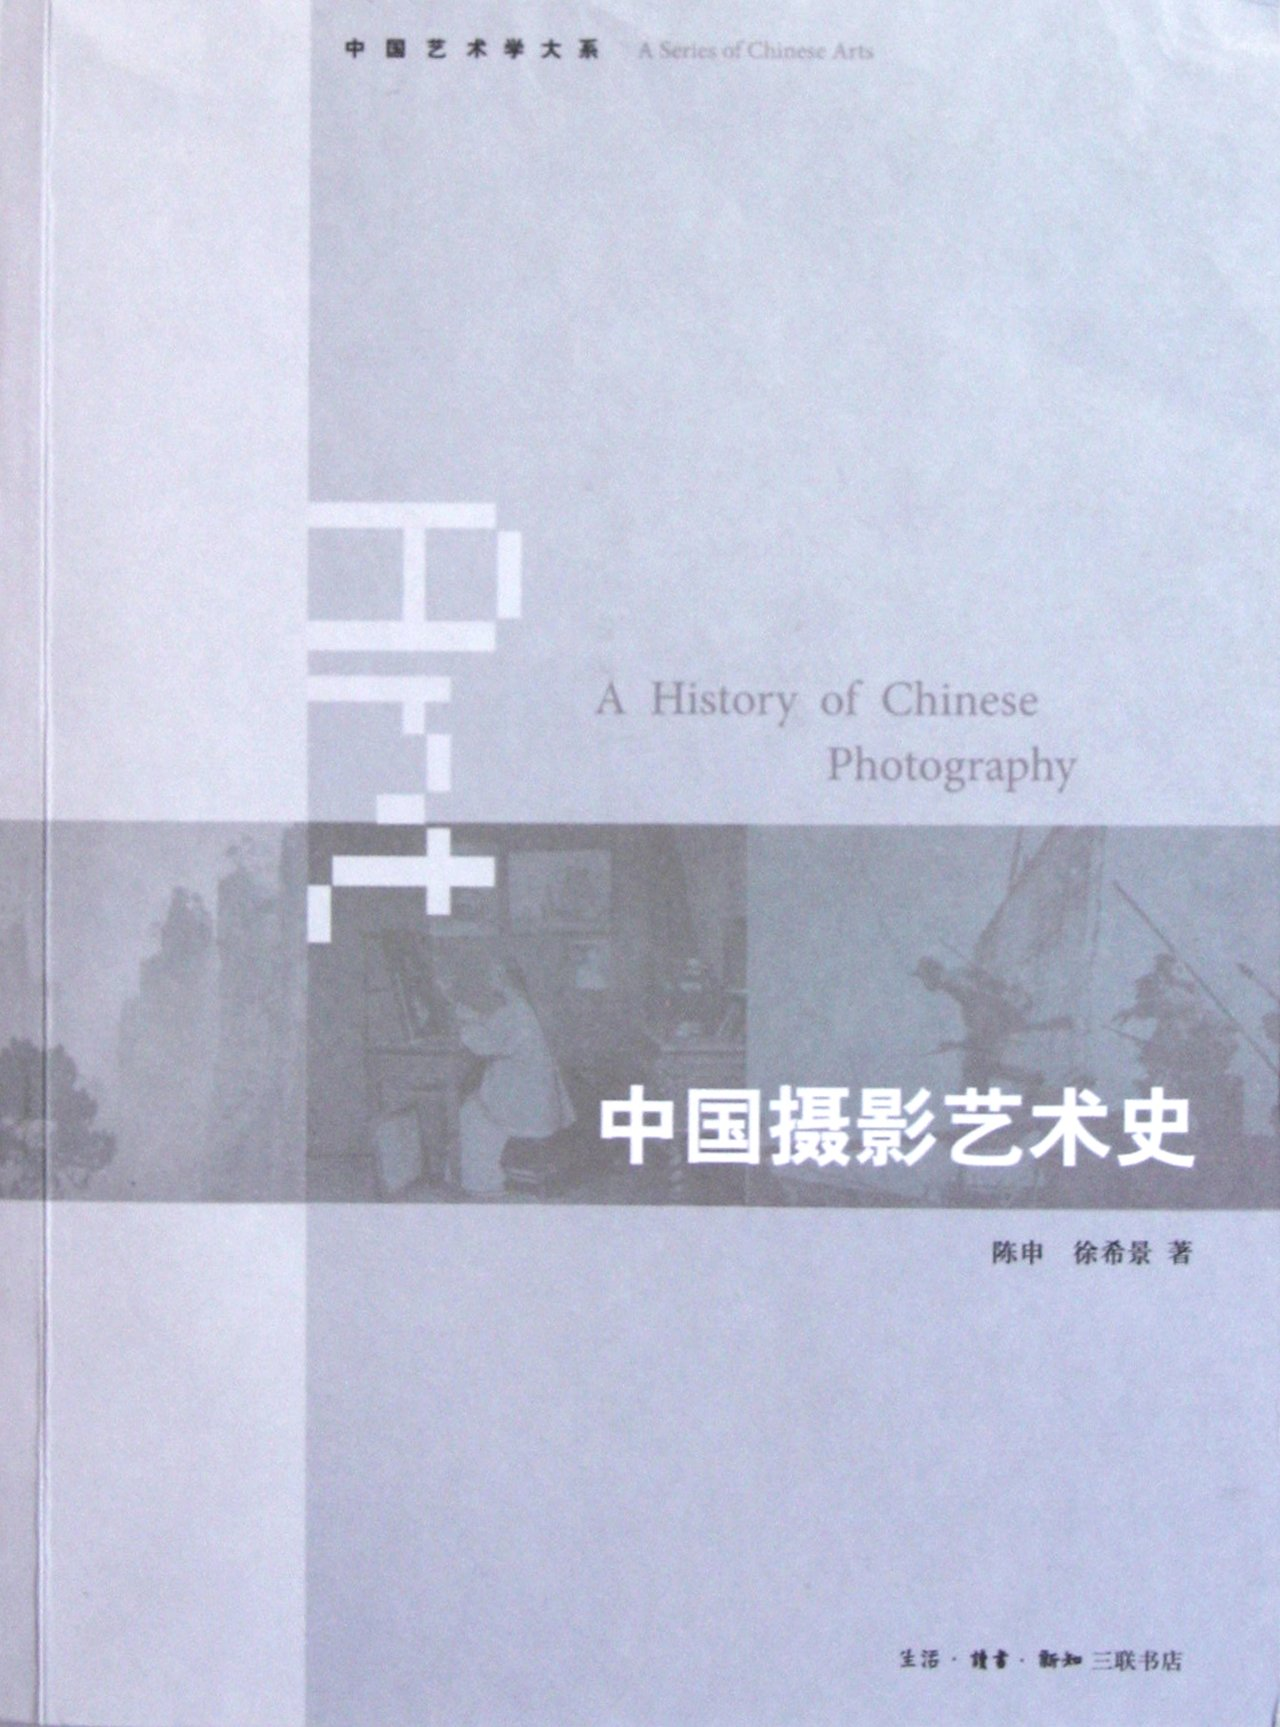 Download Chinese Photography Art History (Chinese Edition) ebook